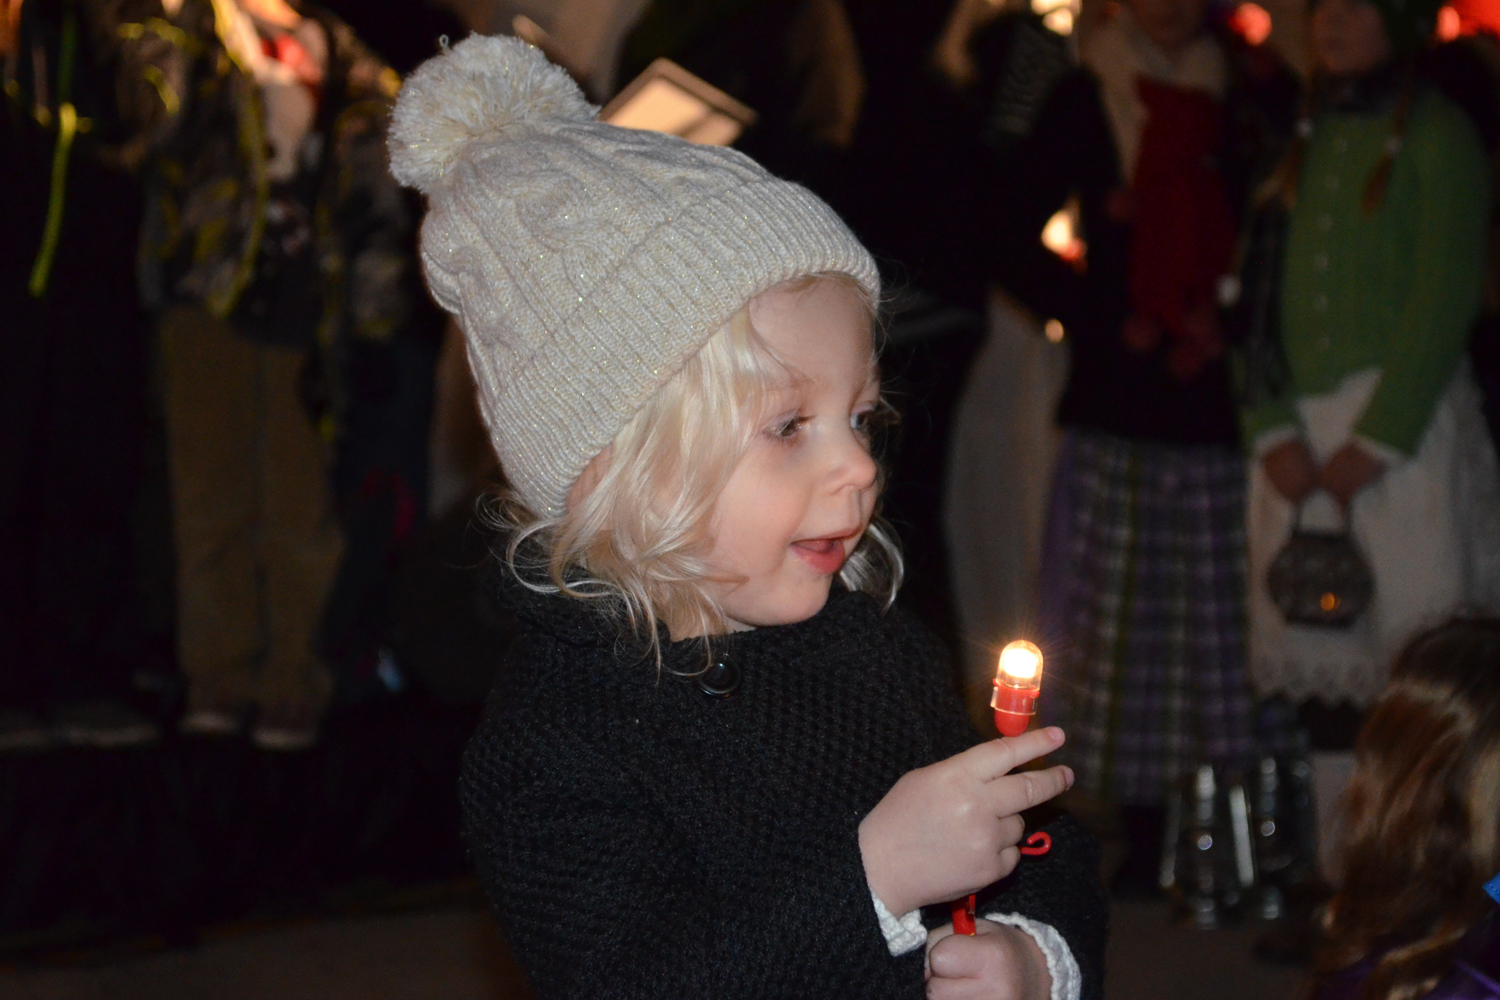 st-martins-lantern-parade-girl-holding-light.jpg